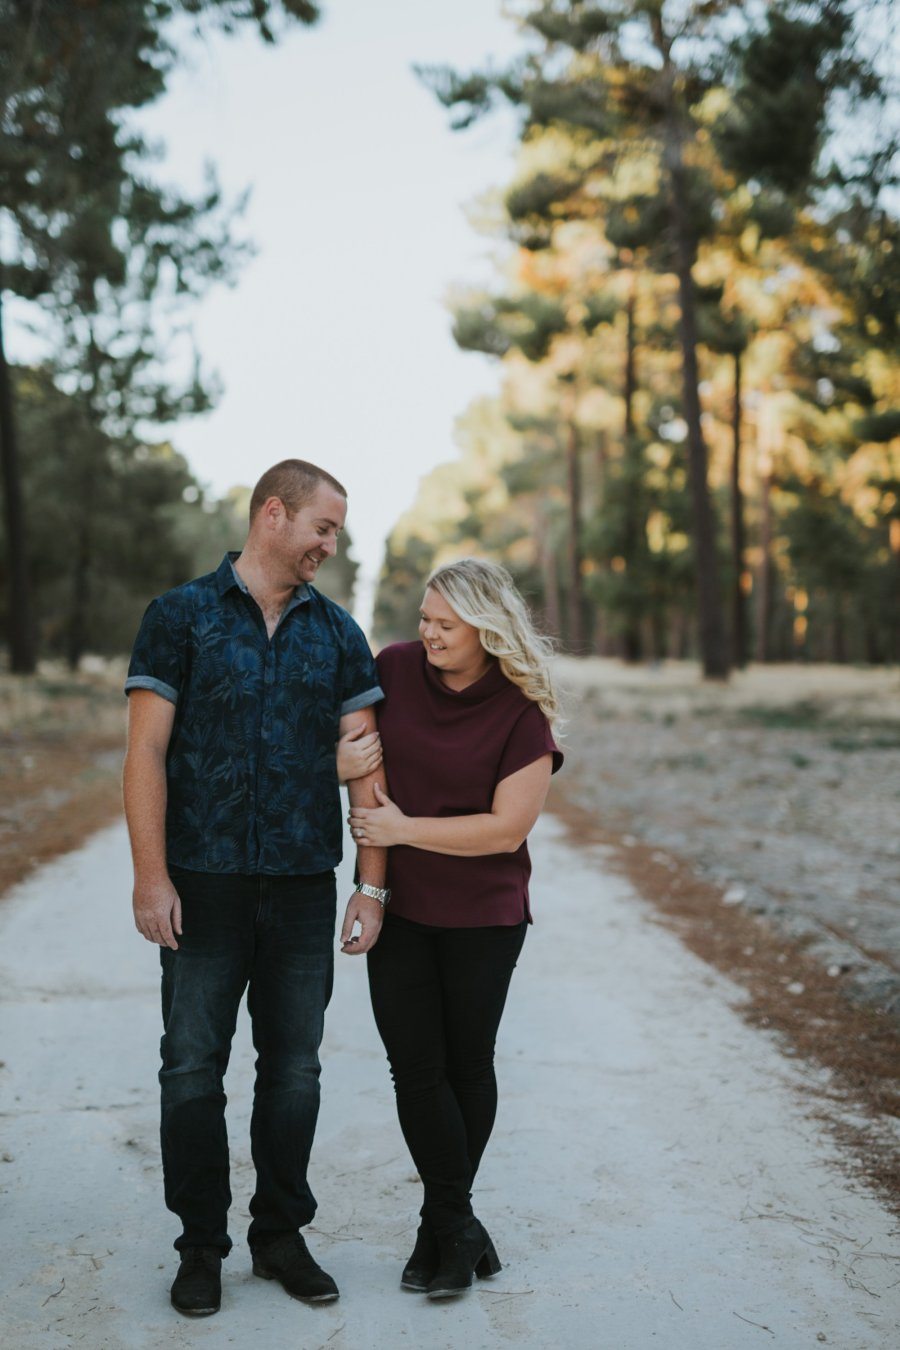 Perth Wedding Photographer | Pines Forrest Engagment | Ebony Blush Photography | Corry + Reece | Pre Wedding108